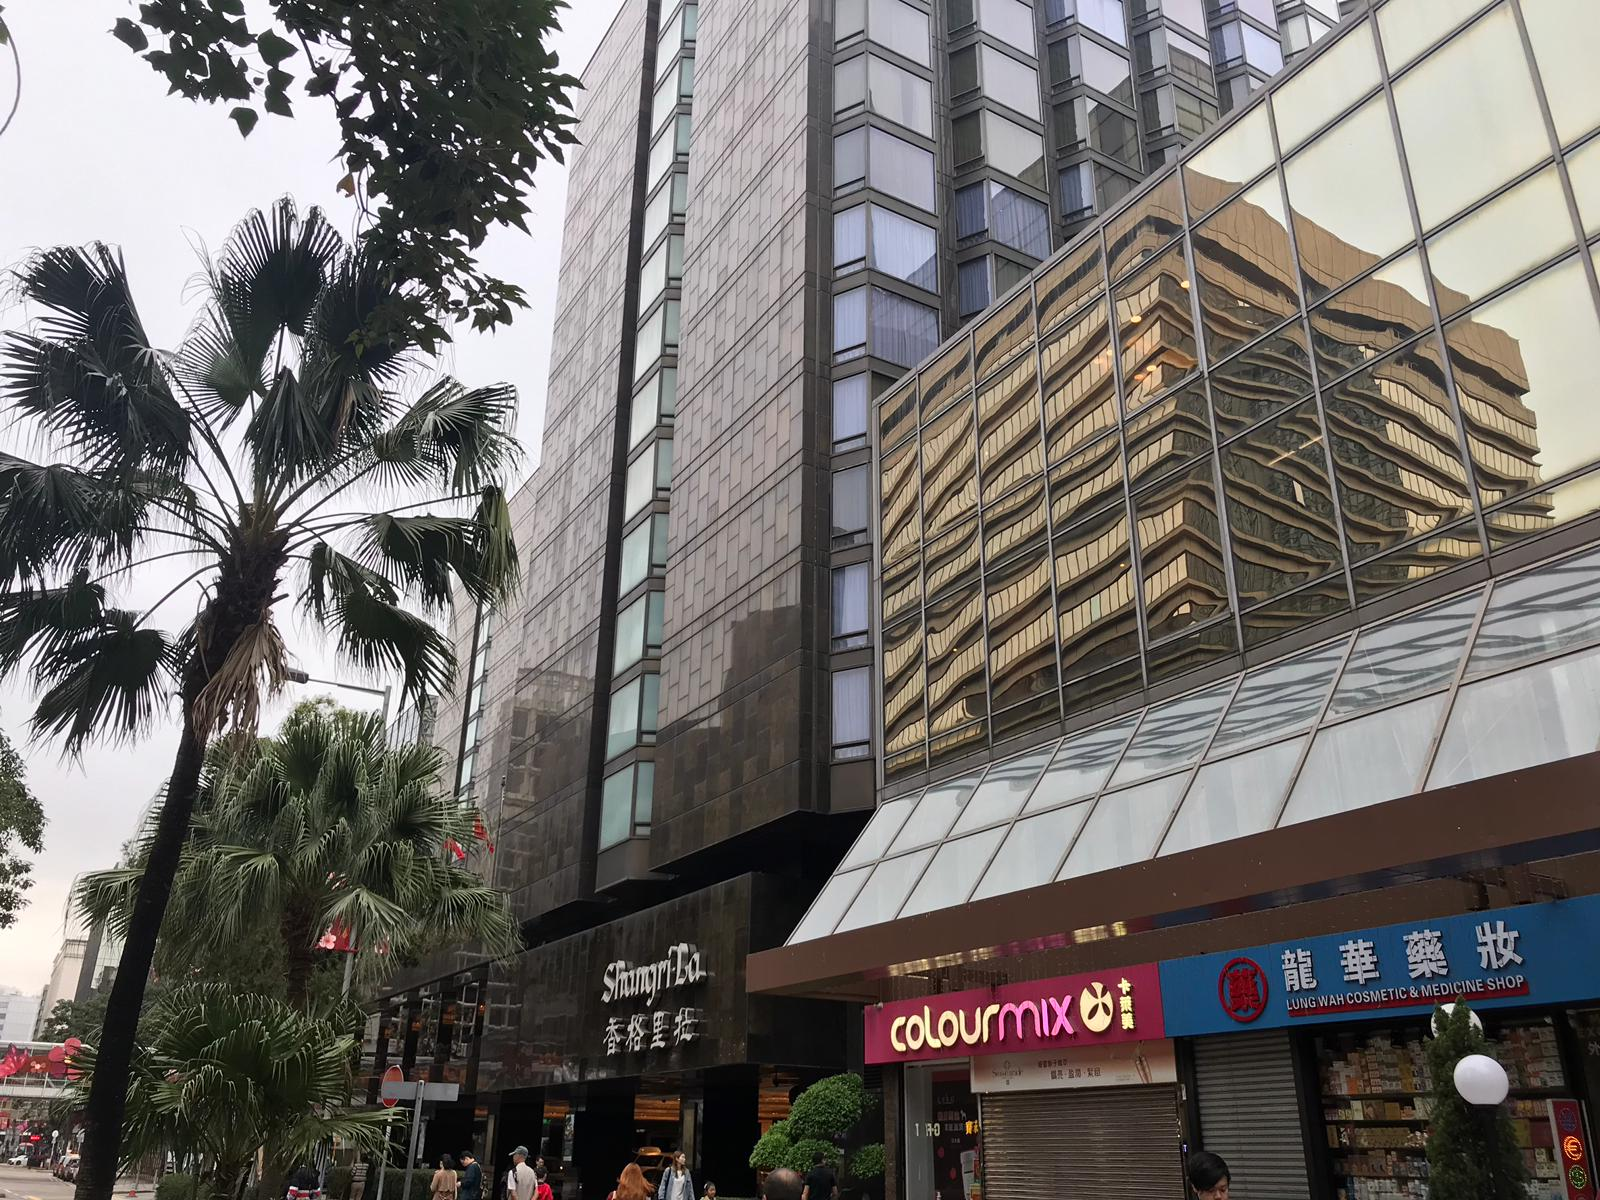 Kowloon Shangri-La Hotel – Replacement of Busway | BYME